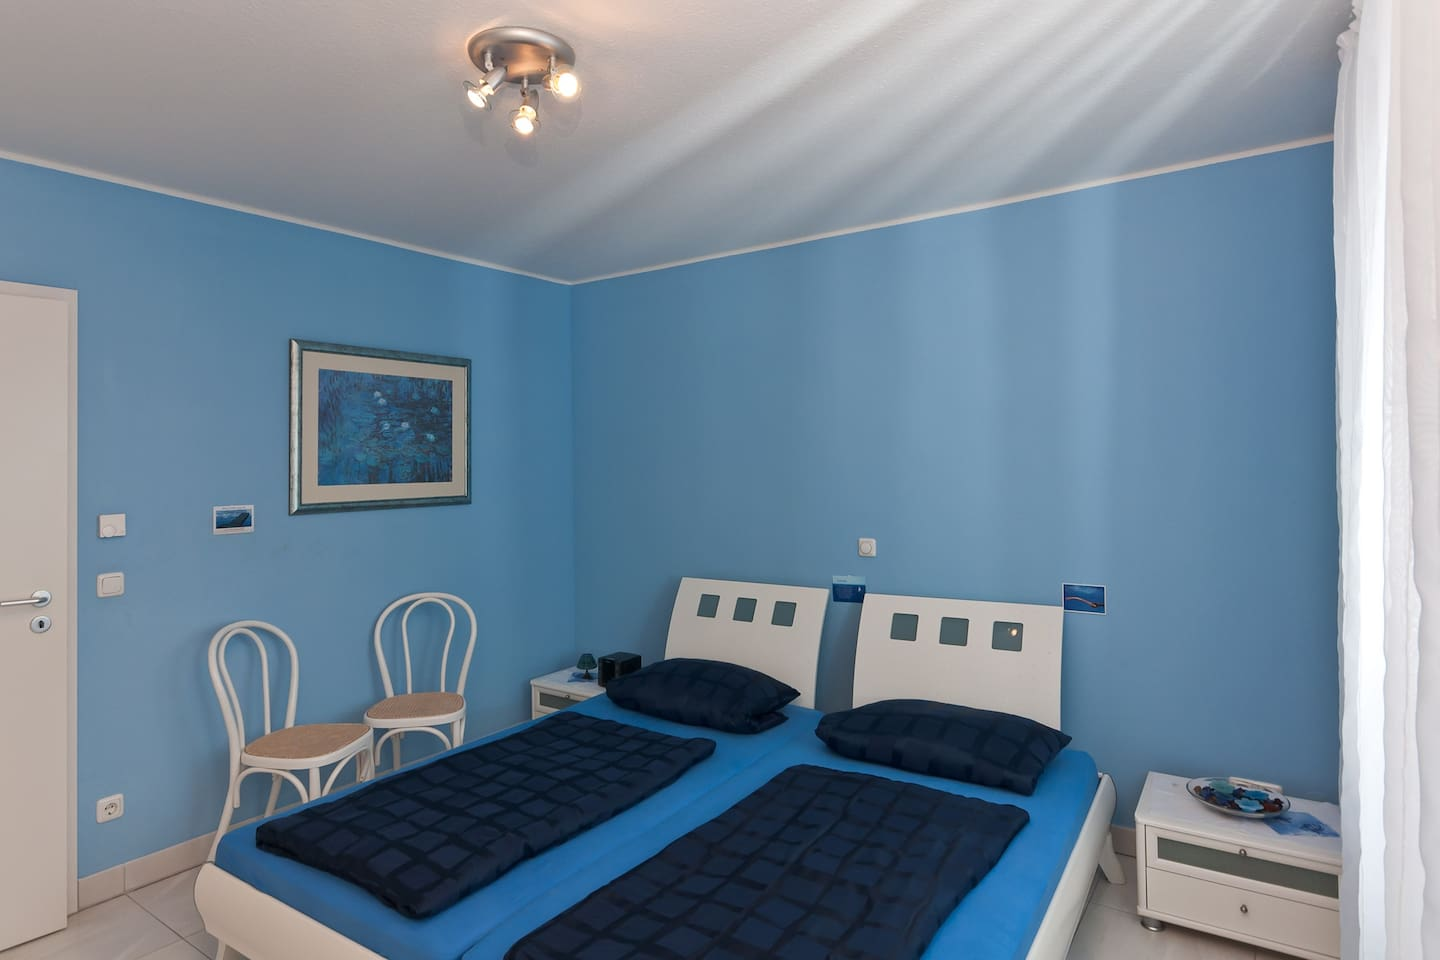 Room with a comfortable big double bed (200 cm x 200 cm, 2 mattresses)